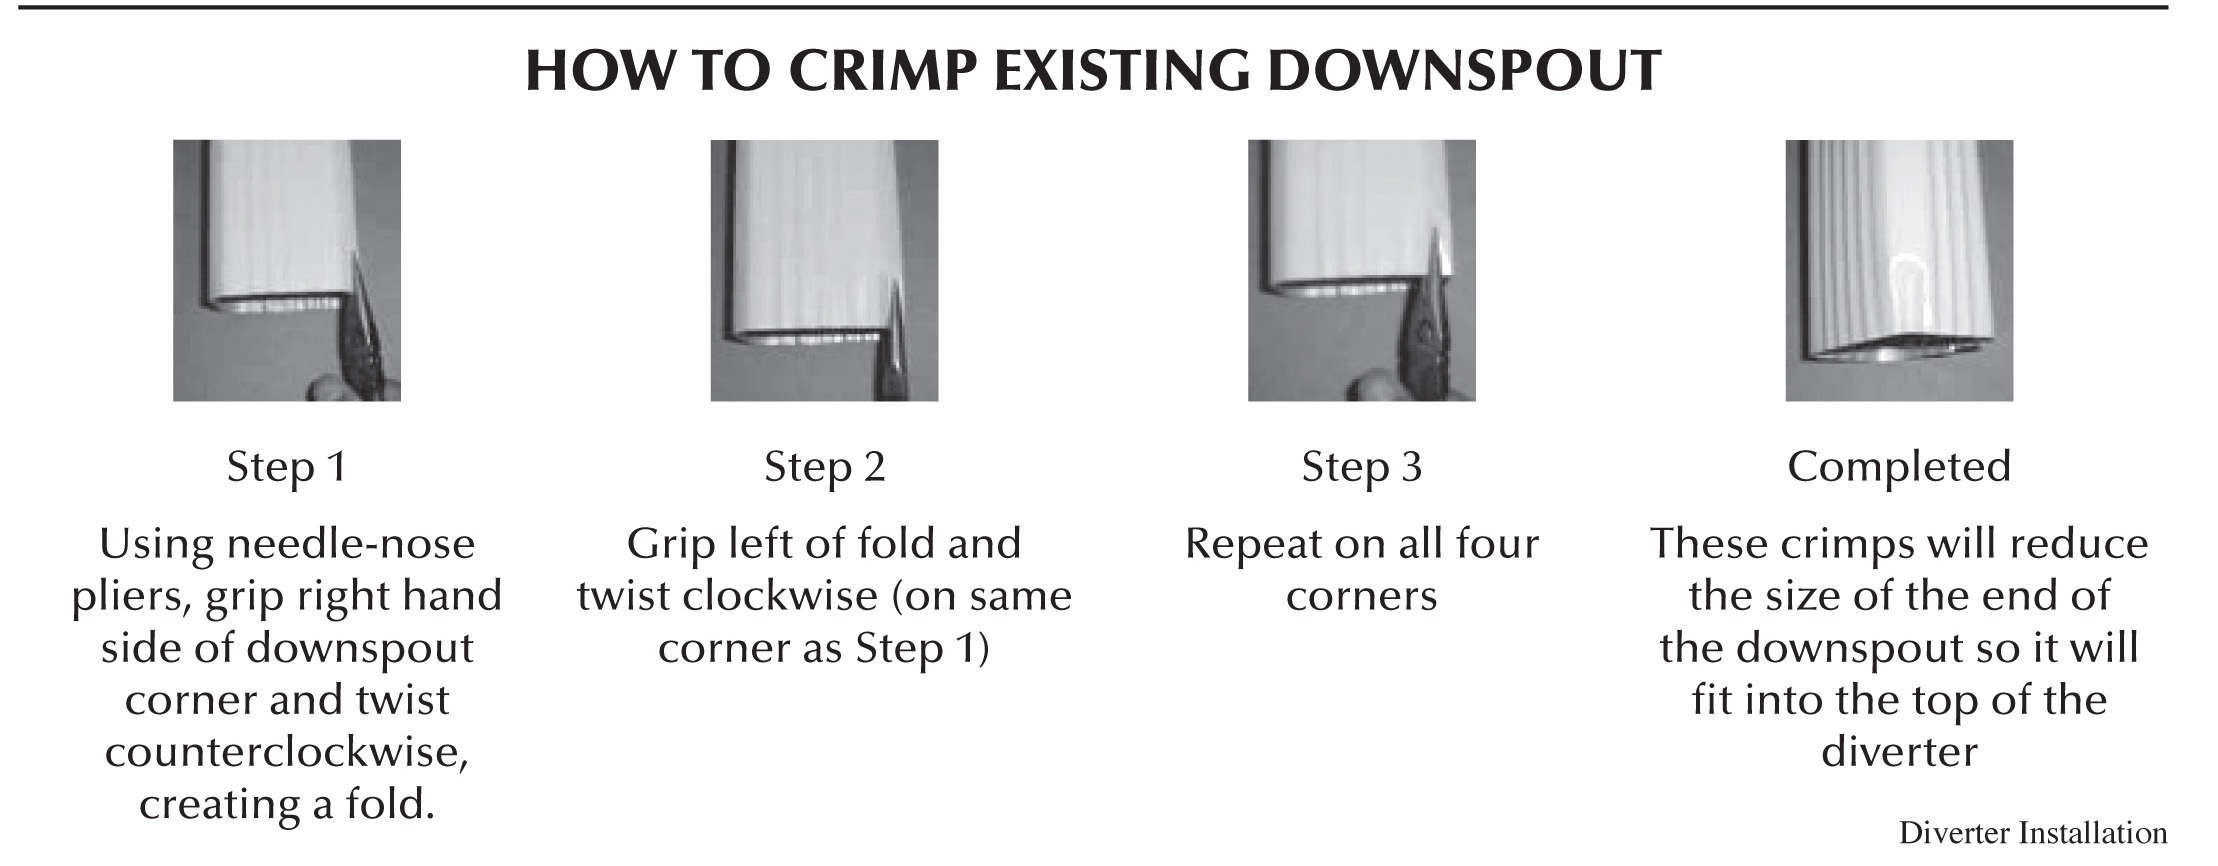 How to crimp a gutter downspout instruction image